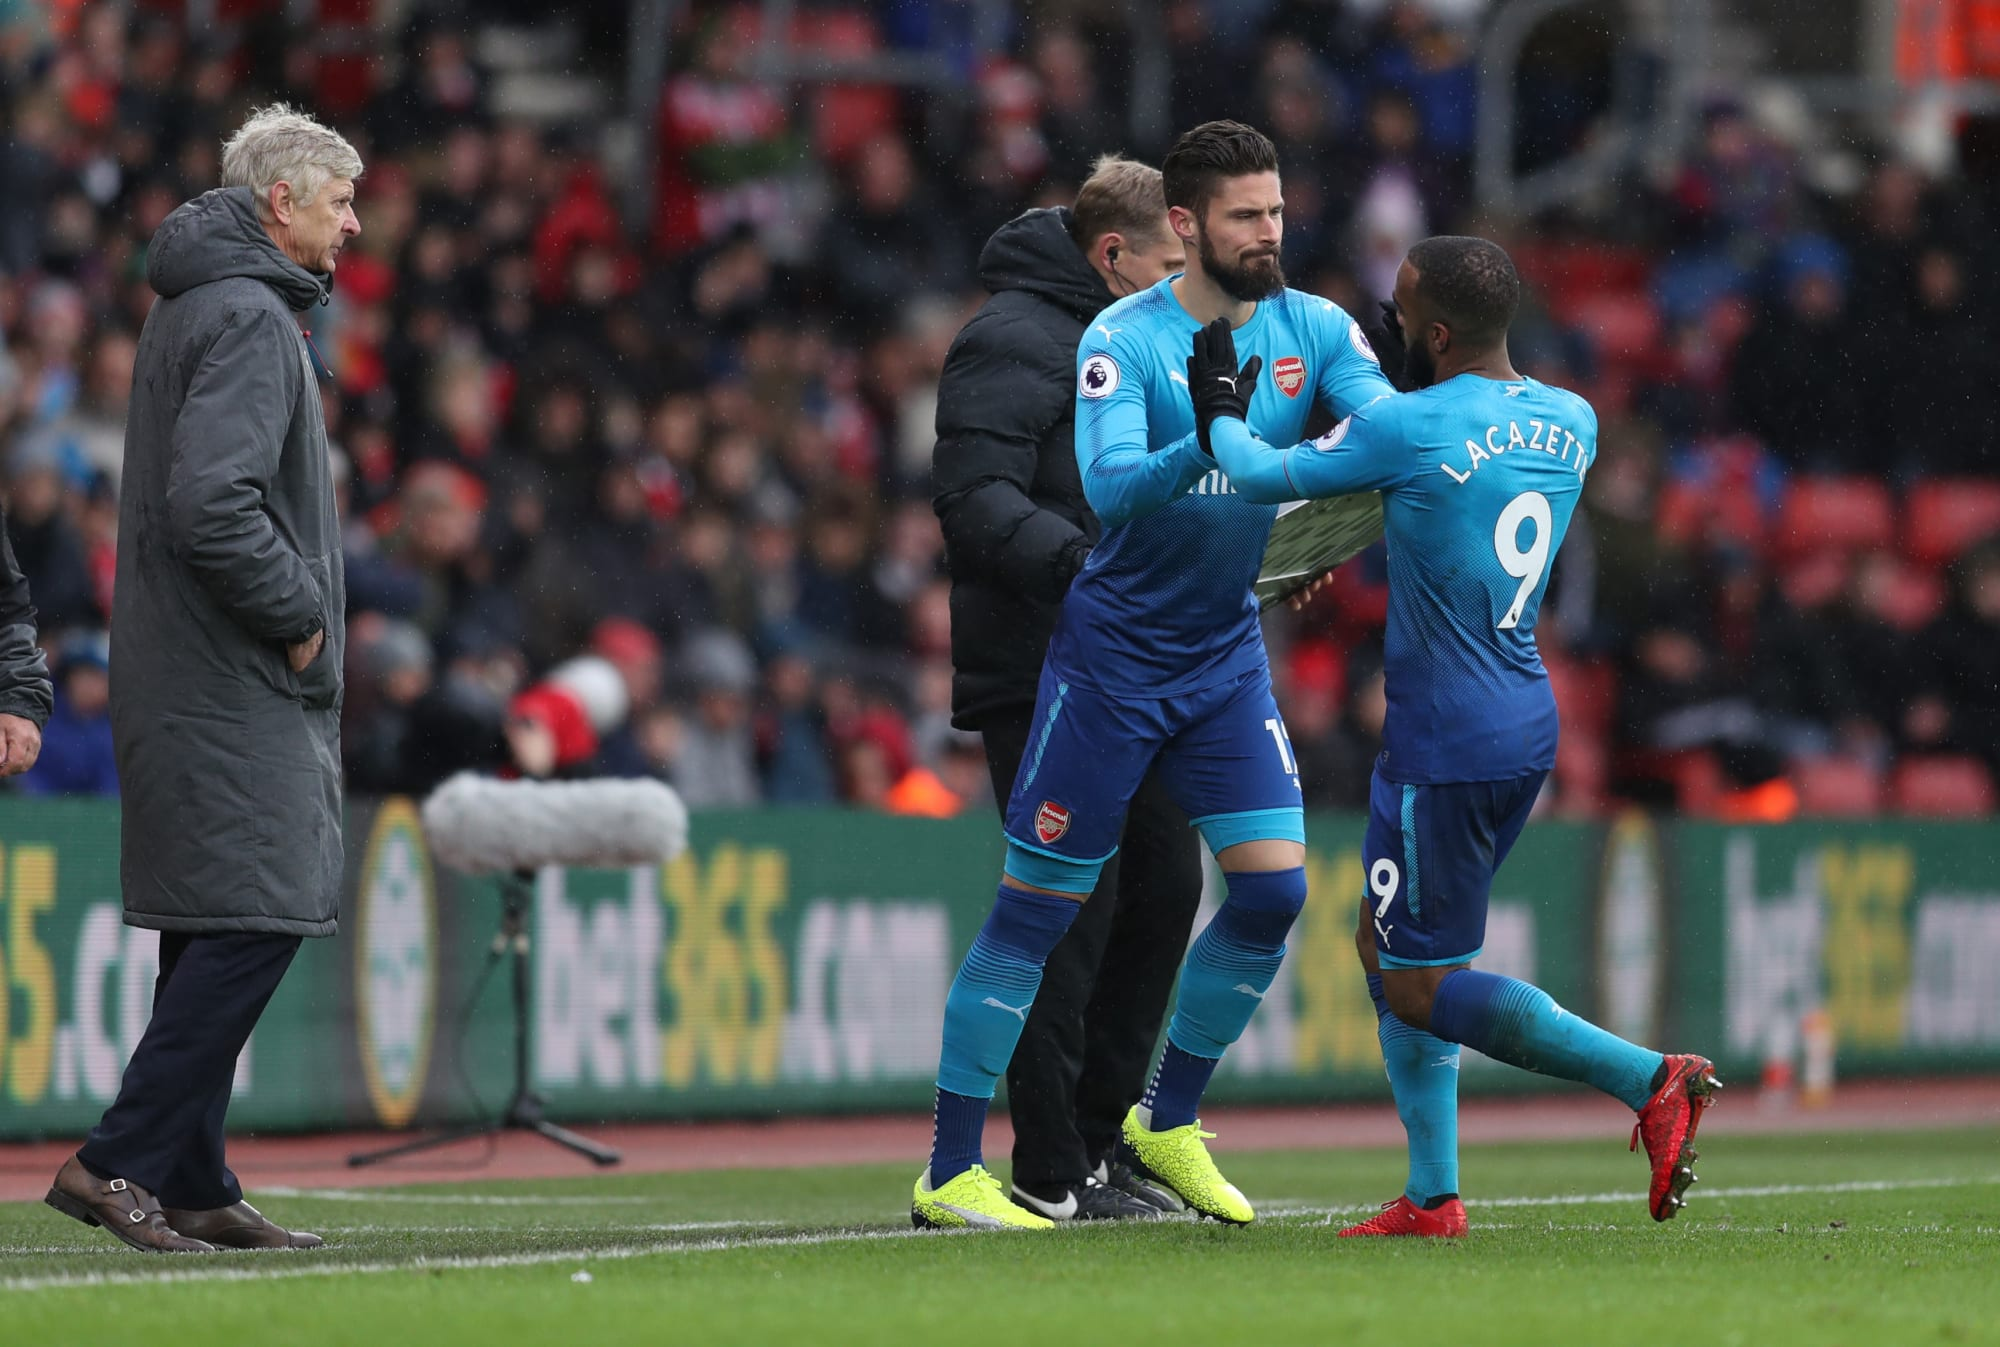 Arsenal: 4 rotation players who should start vs West Ham